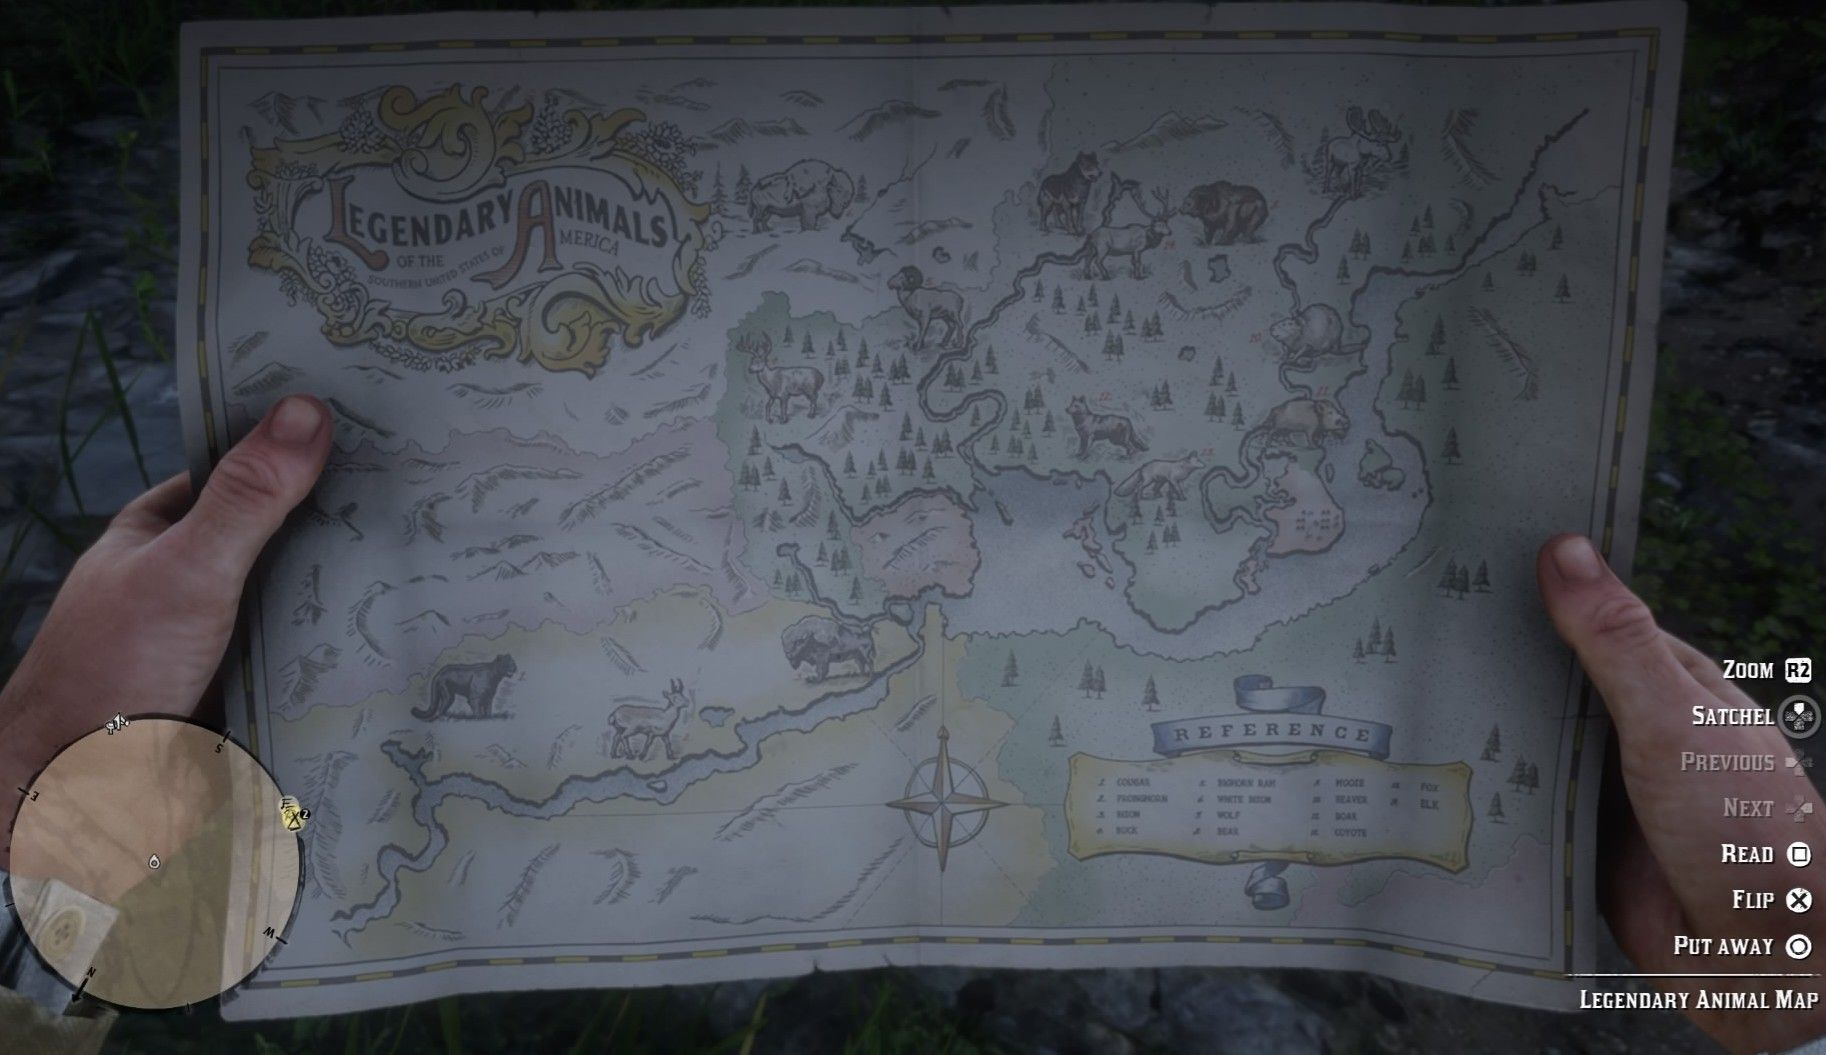 Red Dead Redemption 2 World Map.Red Dead 2 Map Size Vs Gta 5 Comparison Reveals Sheer Scale Of